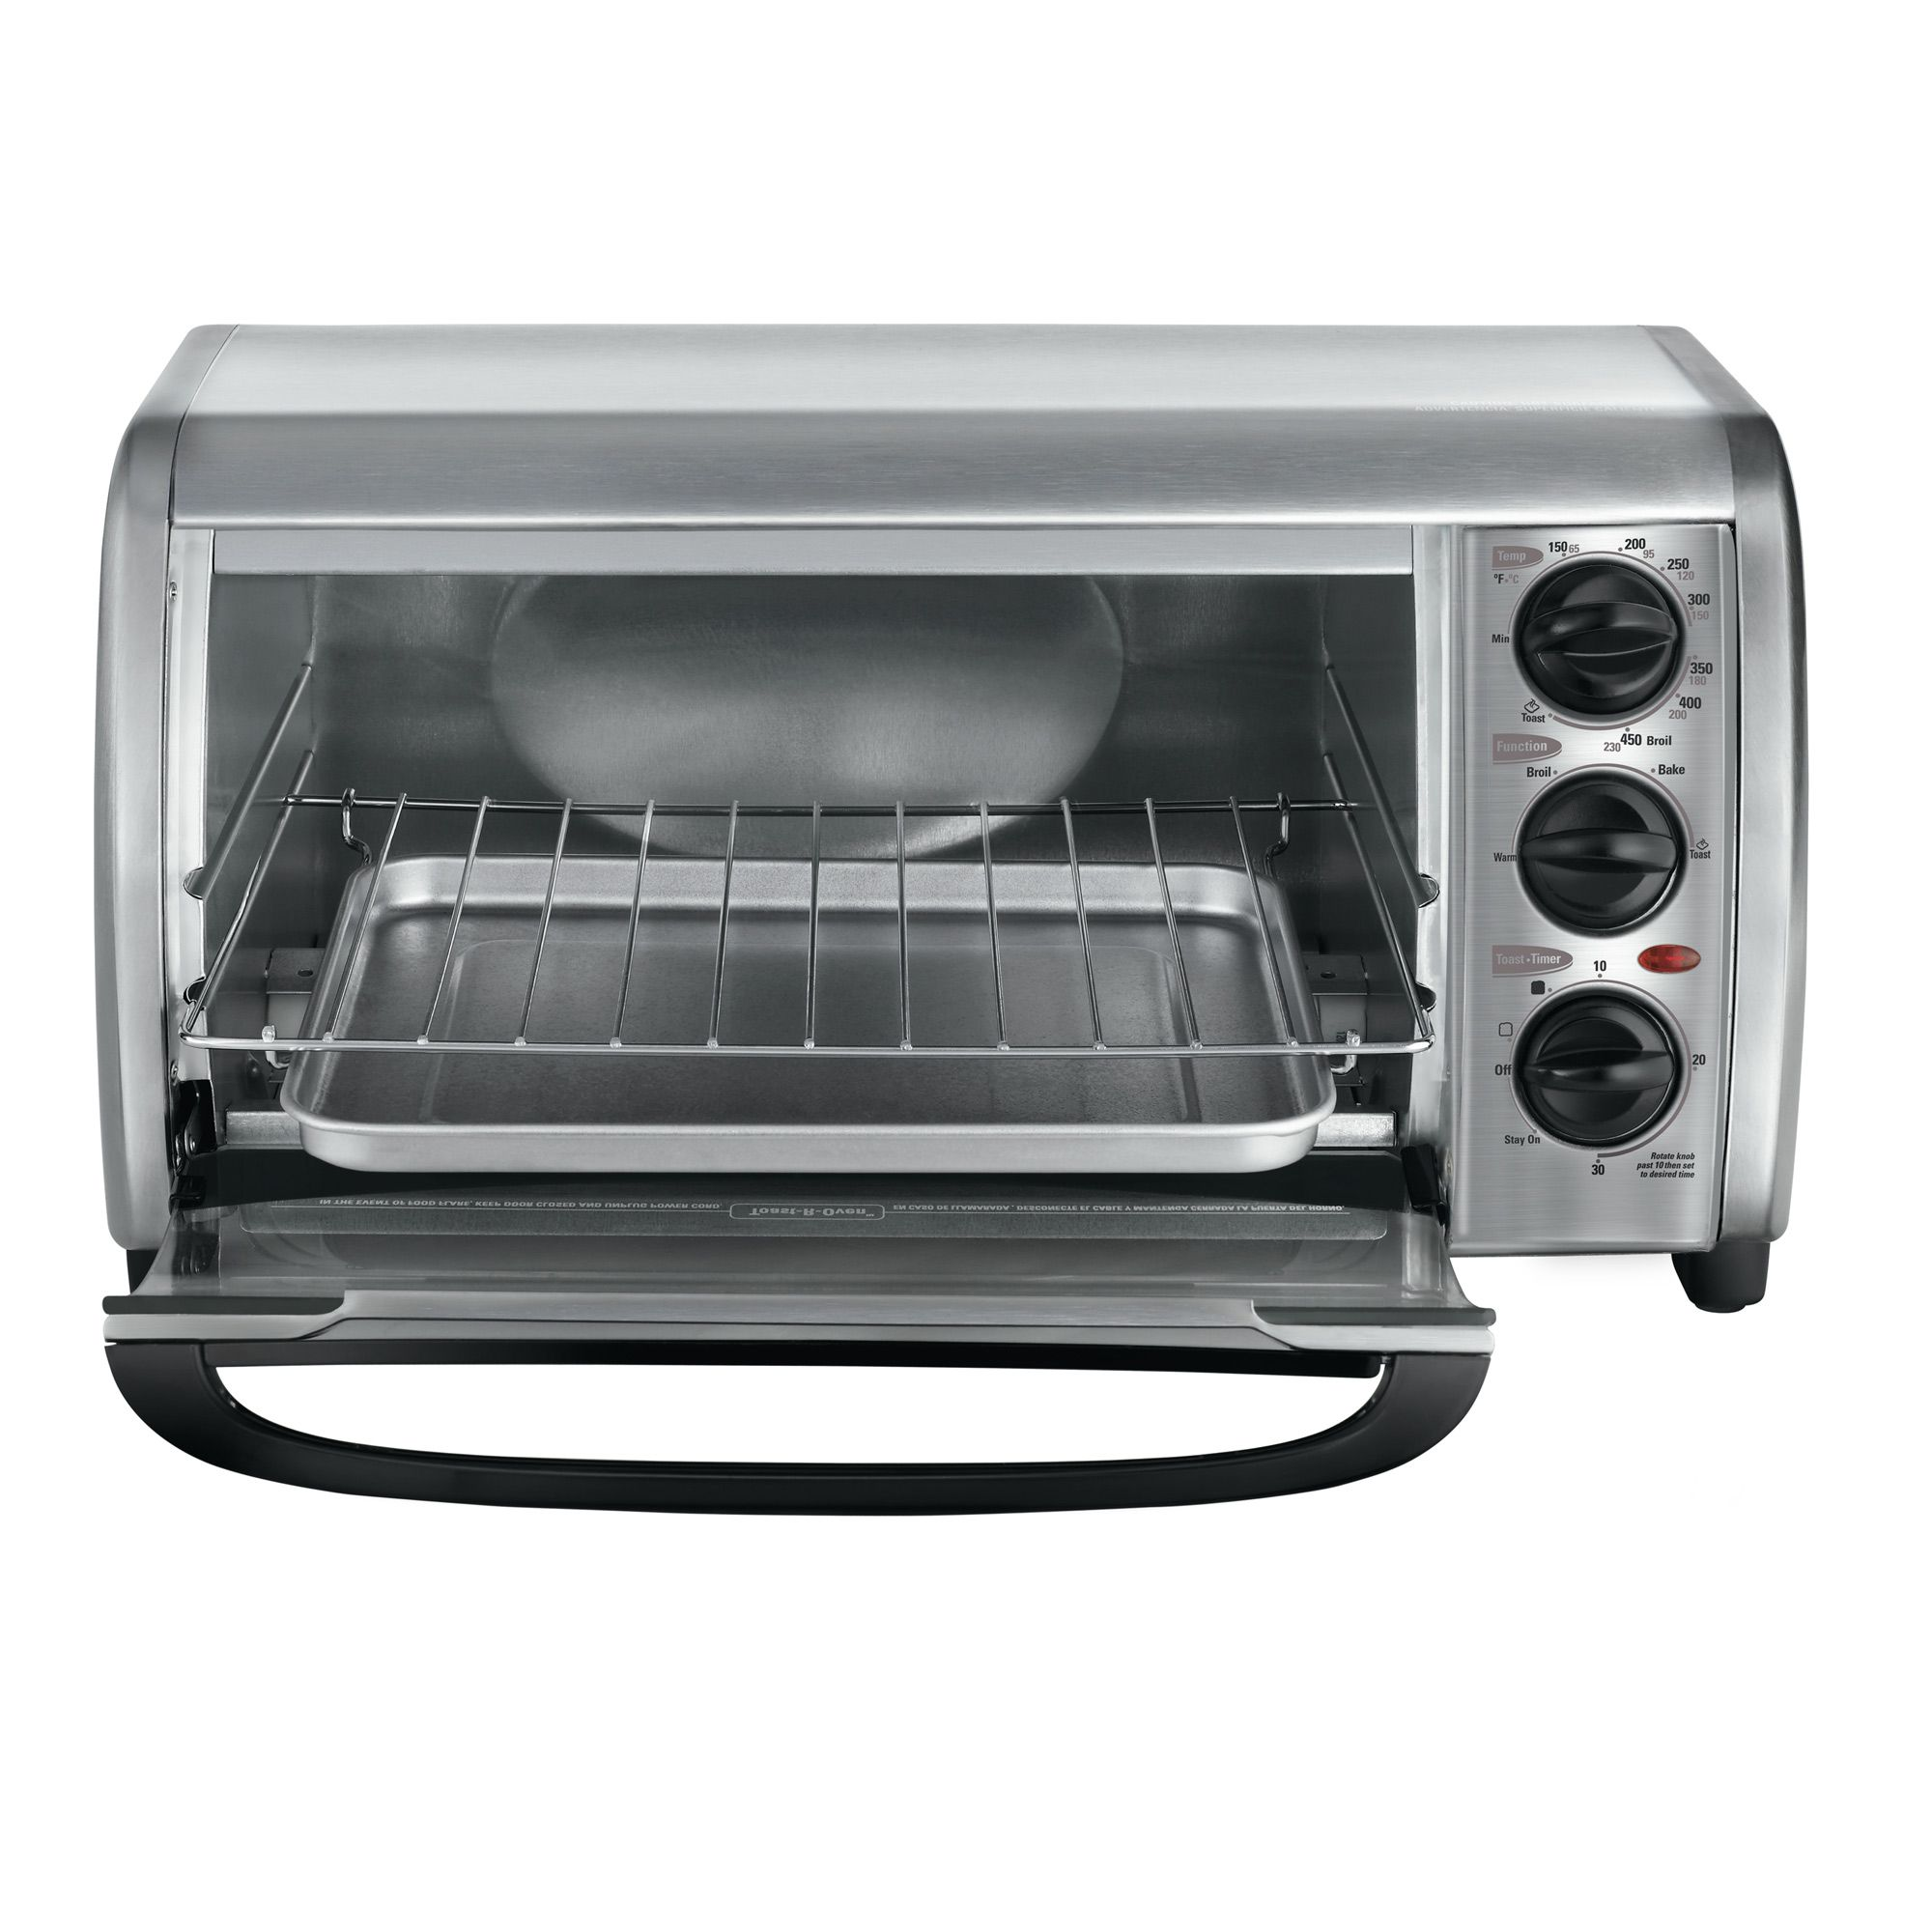 Buy Black And Deckers Best Toaster Ovens The Tro480bs Toaster Oven Has Great Features Like Bake Broil And Bagel Shop Kitchen Appliances Now And Toaster Oven